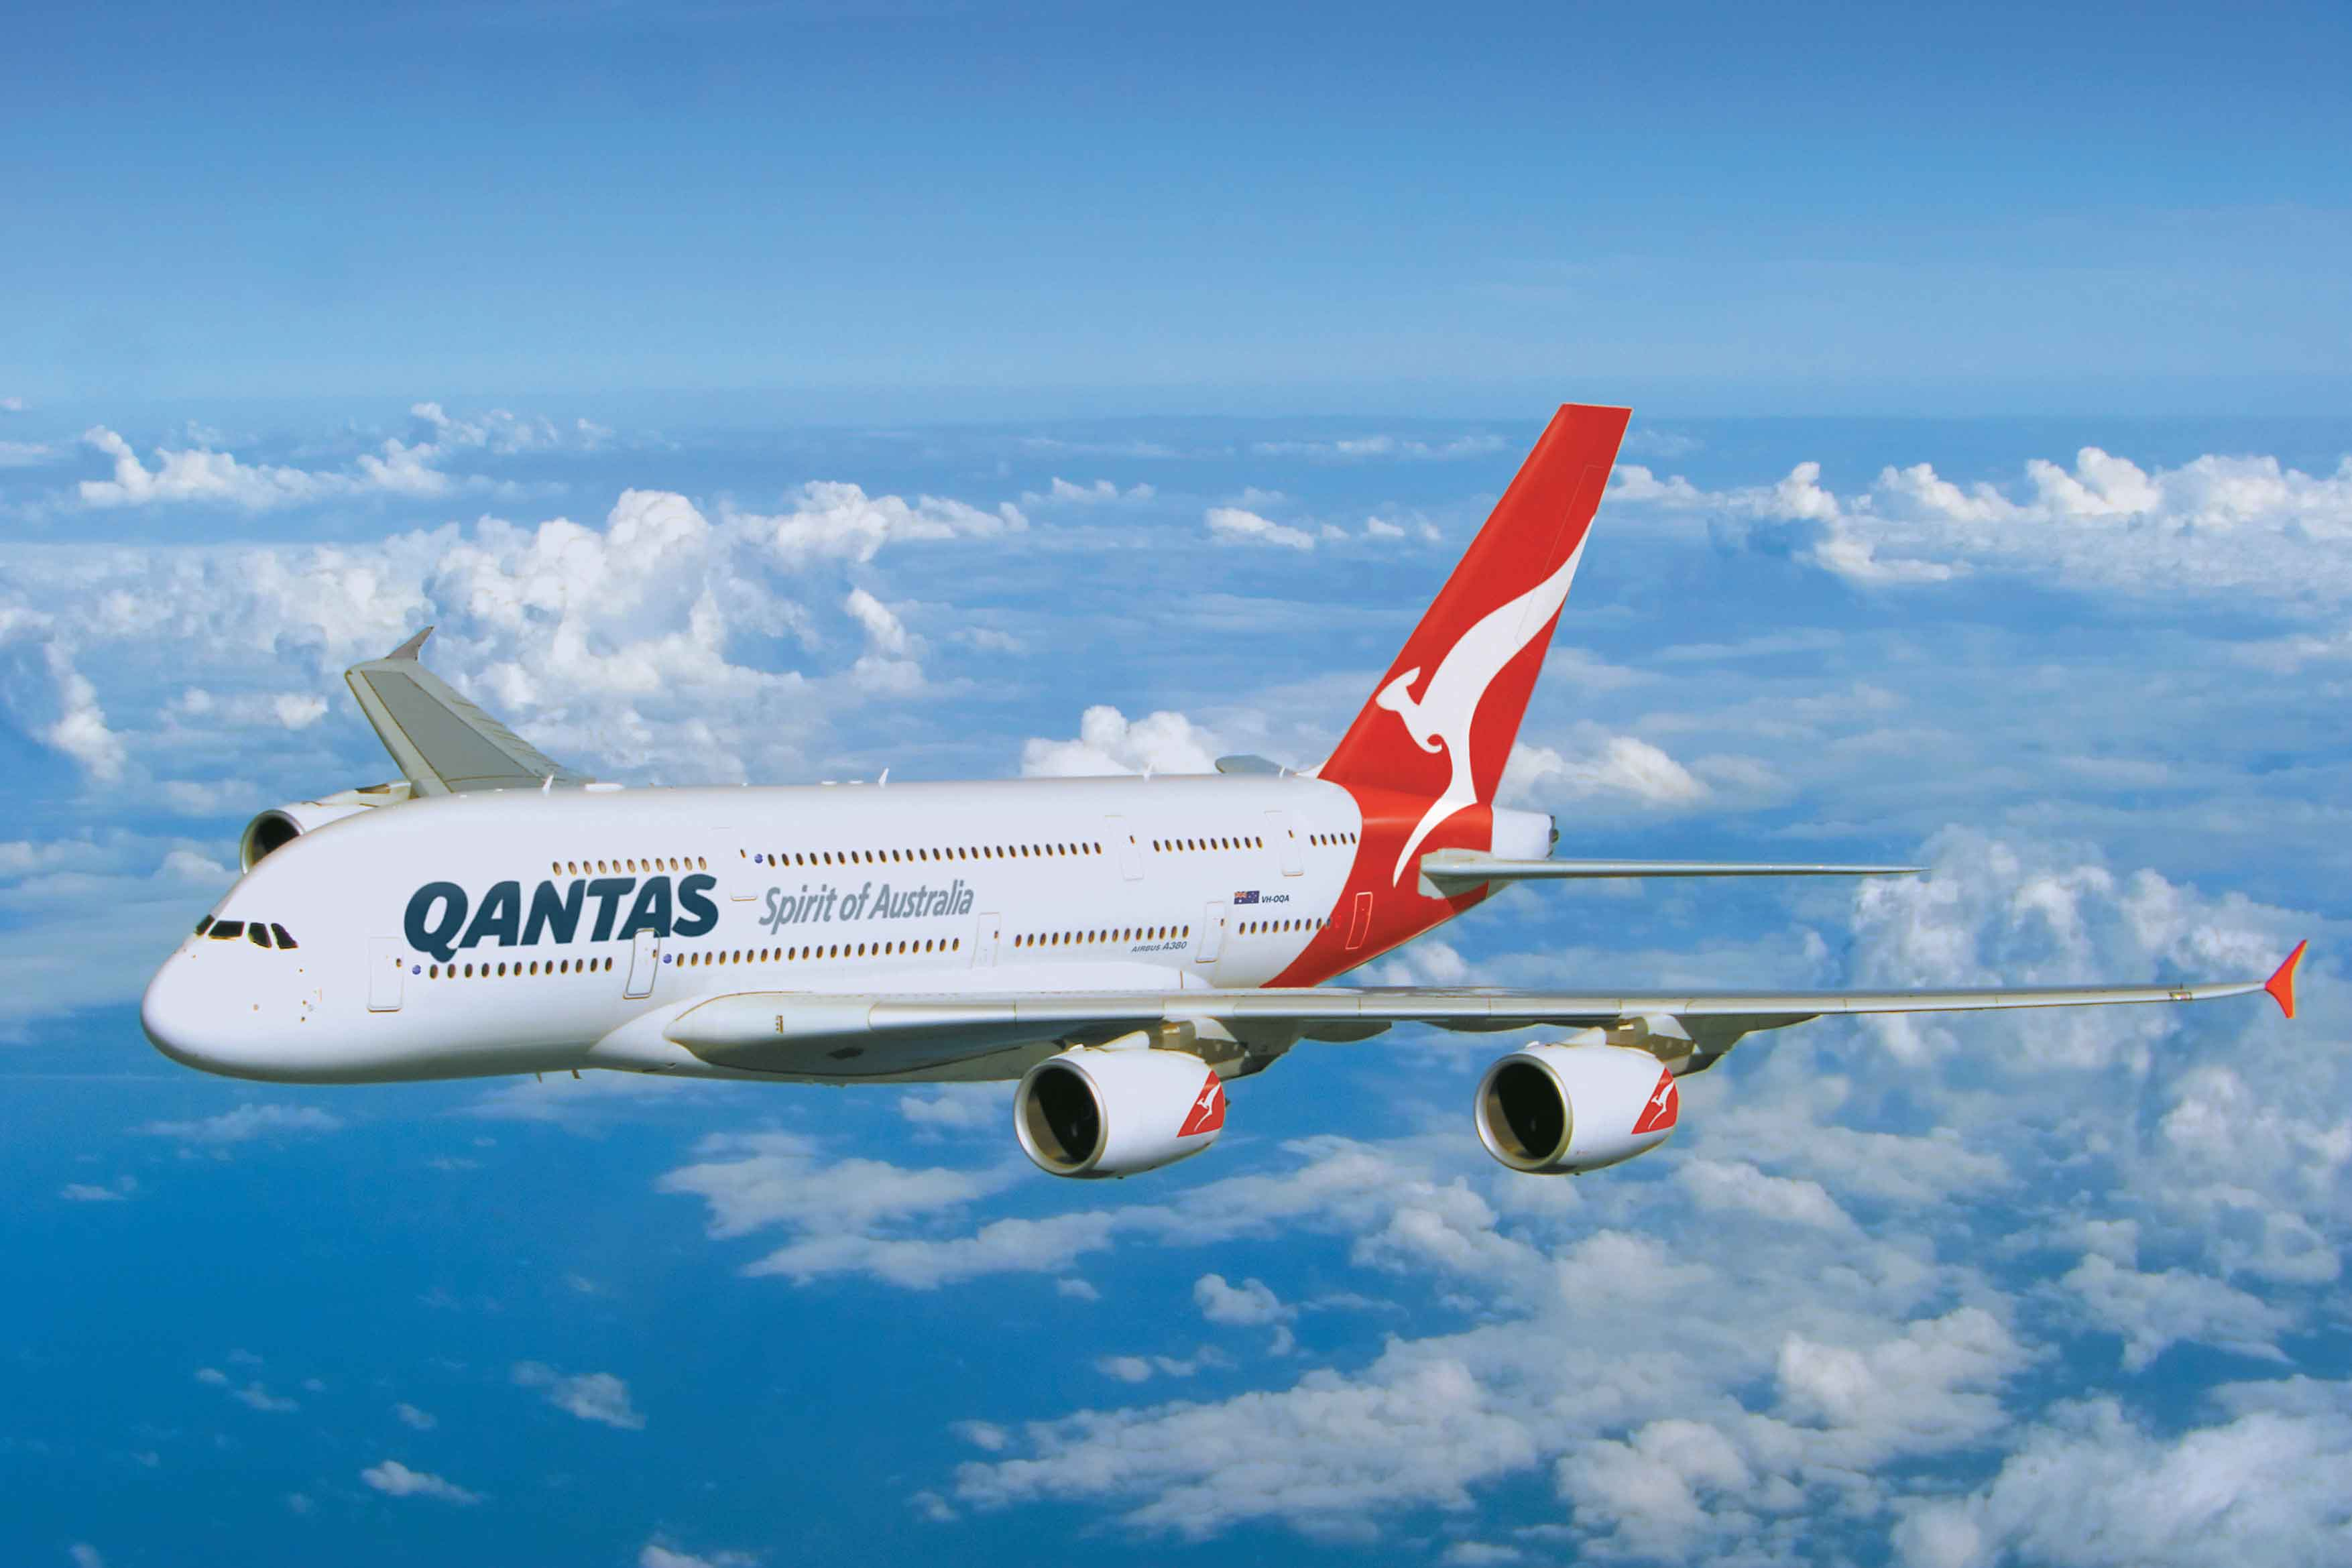 file:///C:/Documents%20and%20Settings/ALEX%20NAUGHTON.OWNER-2TYZC0SV7/My%20Documents/My%20Pictures/A380%20QANTAS%20in%20flight.jpg